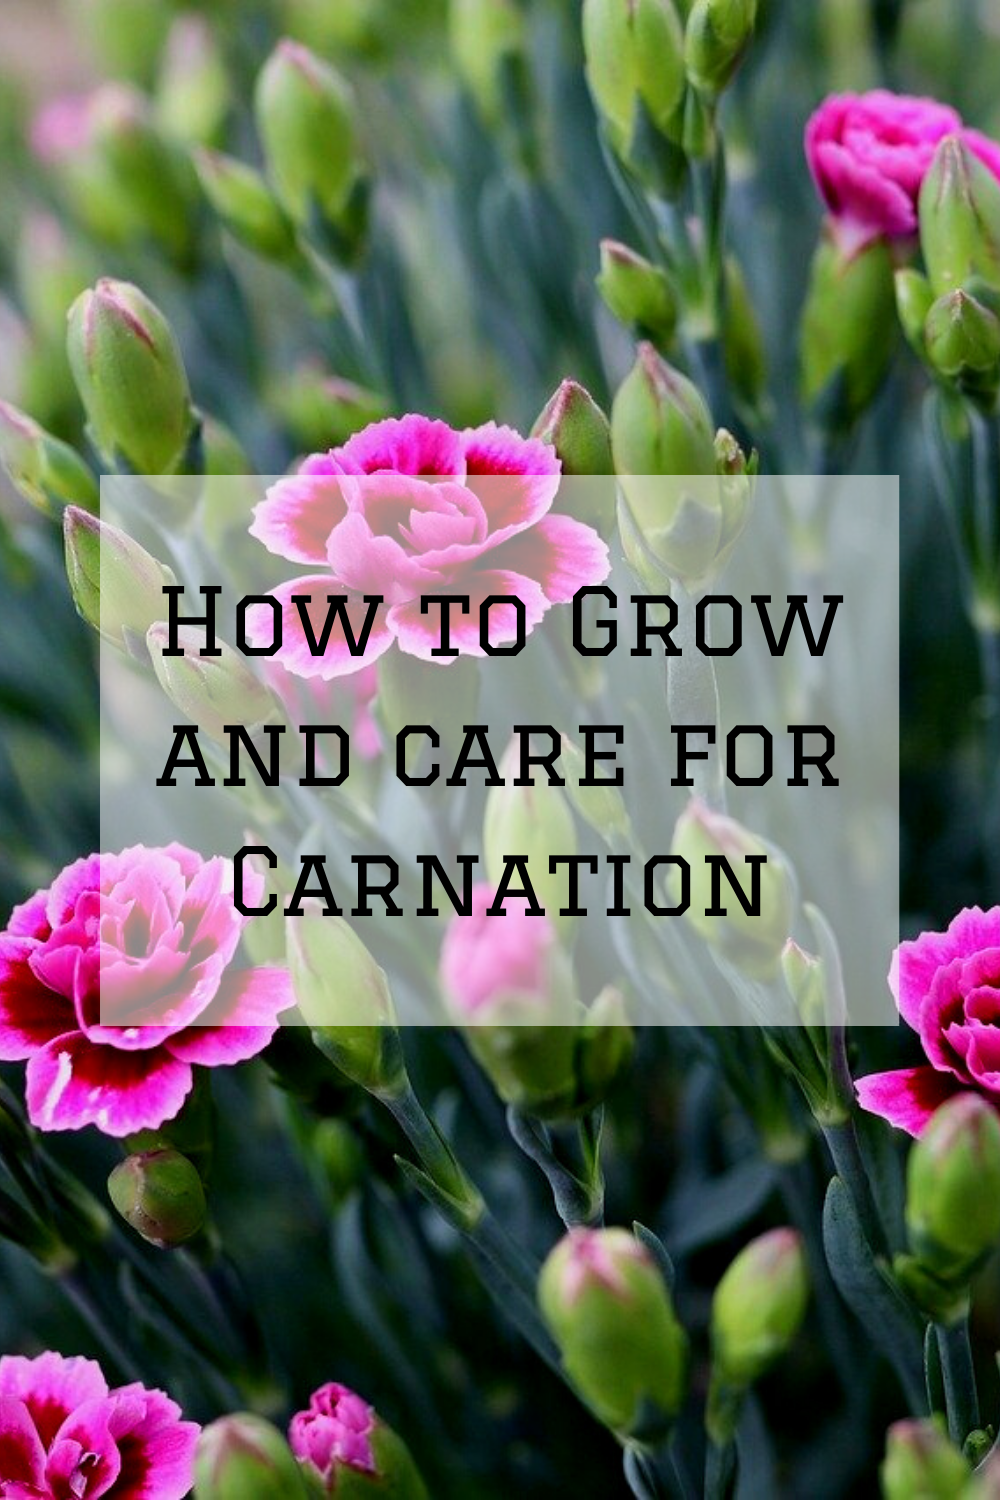 How To Grow And Care For Carnation In 2020 Growing Flowers Carnations Growing